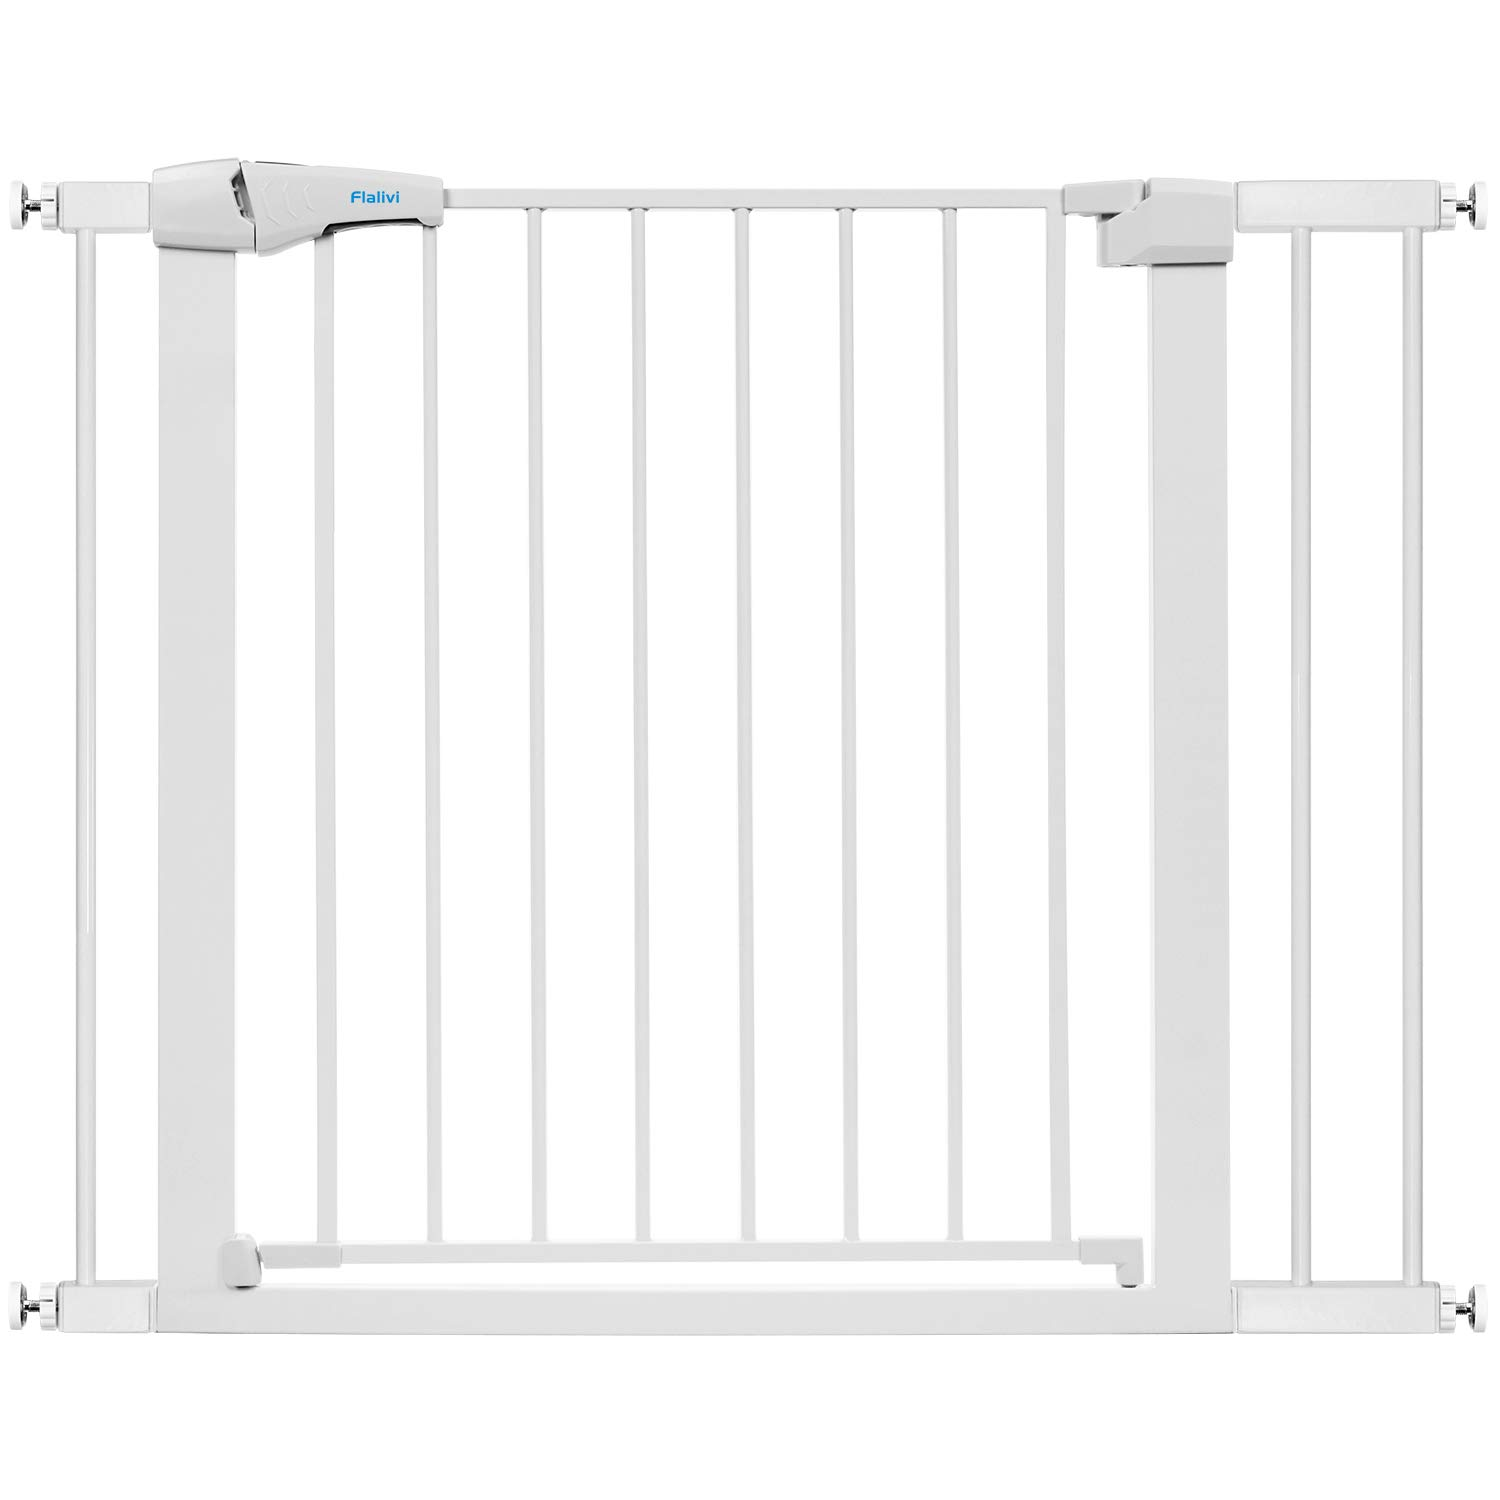 Flalivi 29.5-40.6 Inch Auto Close Safety Baby Gate, Extra Wide Child Gate, Easy Walk Thru Durability Pressure Mount Baby Gate for Doorways, Stairs, House. Include 4 Wall Cups, 2.75'' and 5.5'' Extension by Flalivi